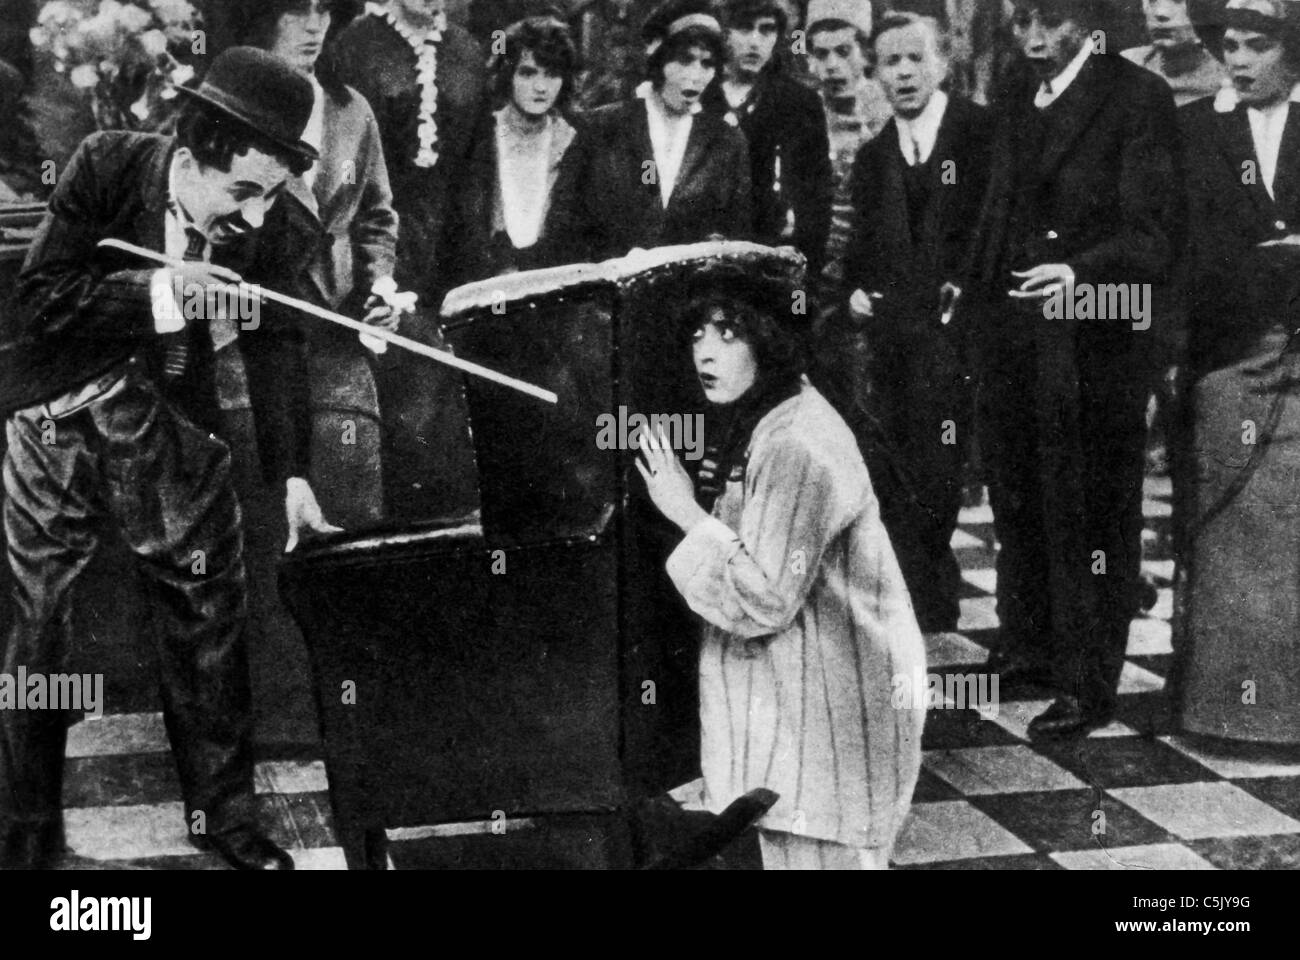 Charlie Chaplin, Edna Purviance, 1916 - Stock Image